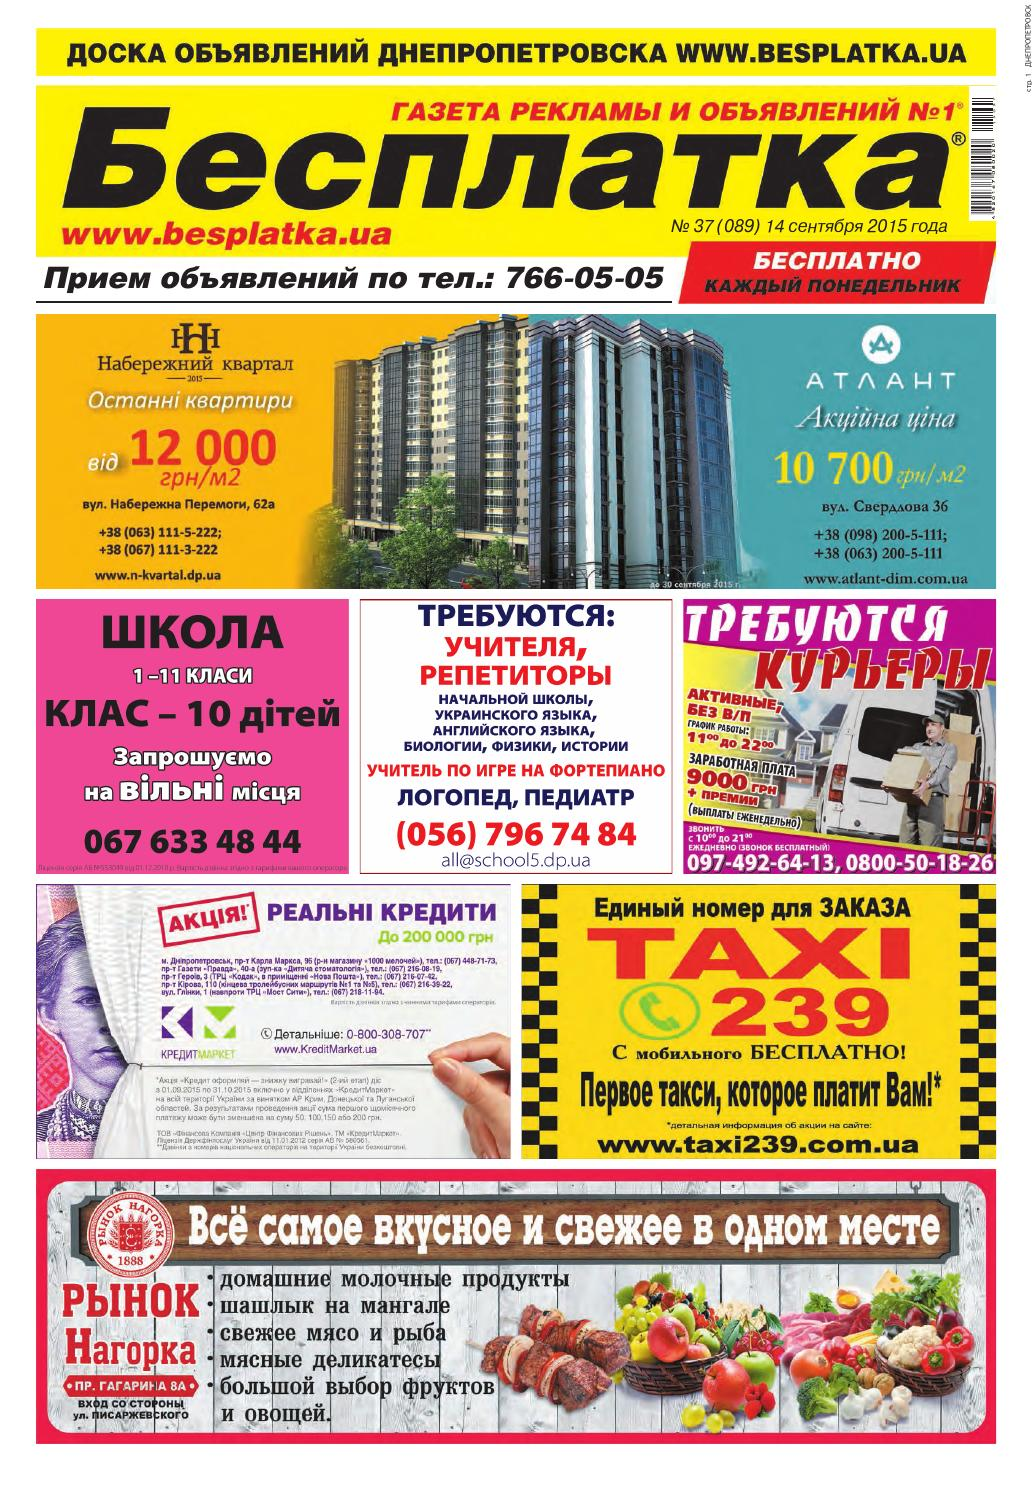 Besplatka  37 Днепропетровск by besplatka ukraine - issuu c15d30977de